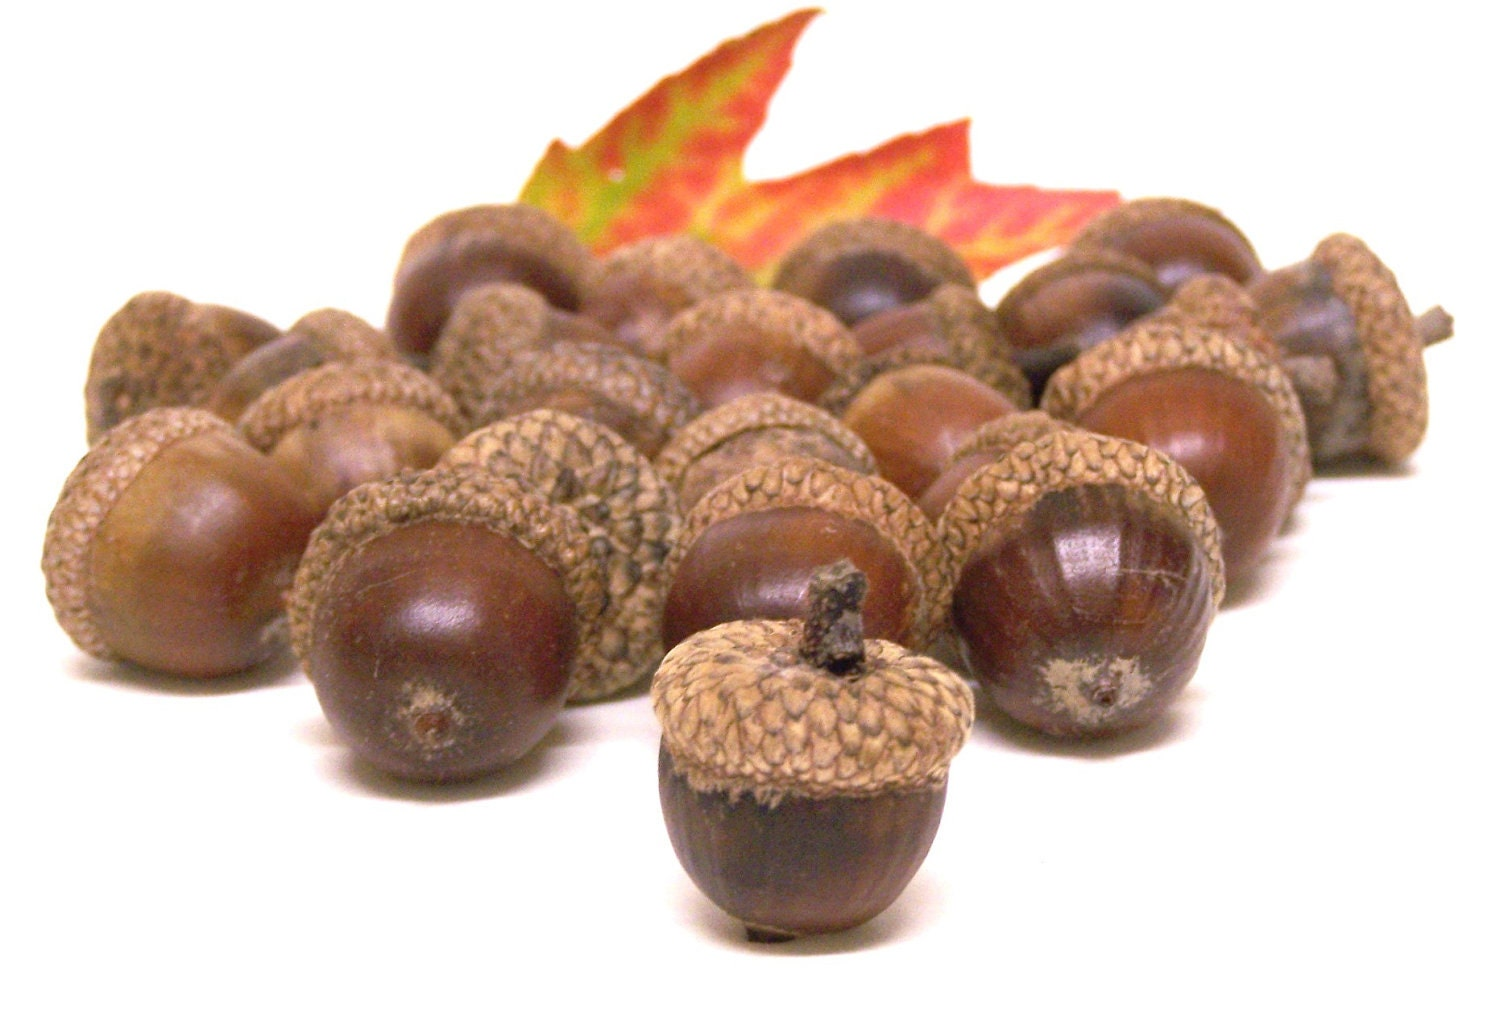 real acorns images galleries with a bite